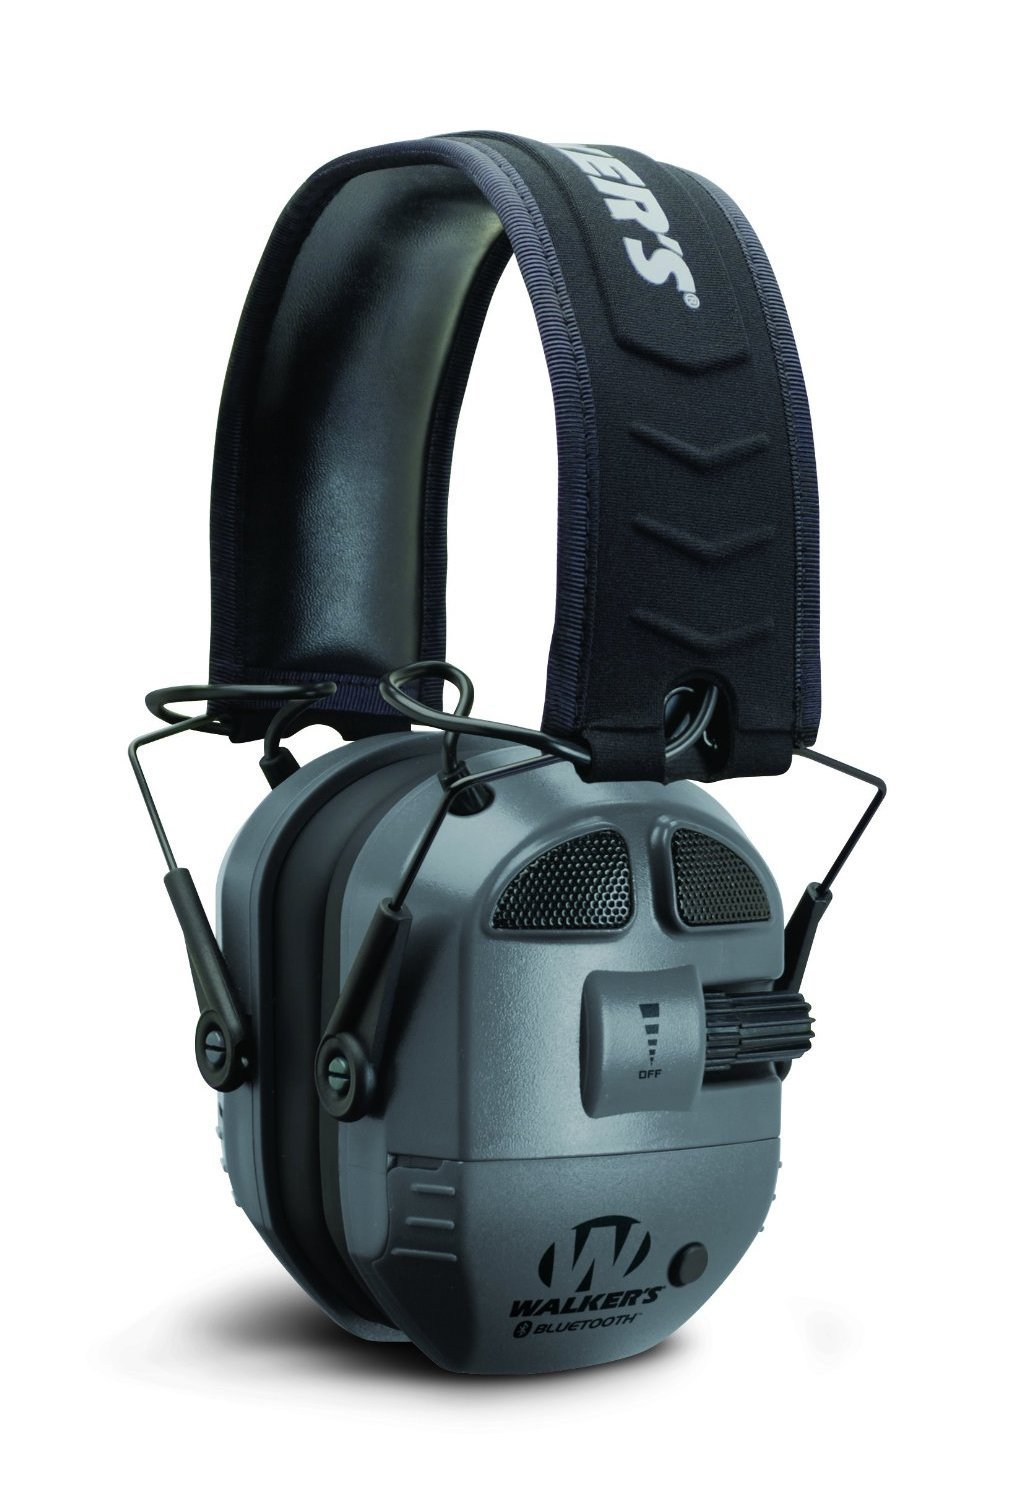 GSM Outdoors GWP-XPMQ-BT Walkers Game Ear Ultimate Quad Analog Muff with Blue Tooth